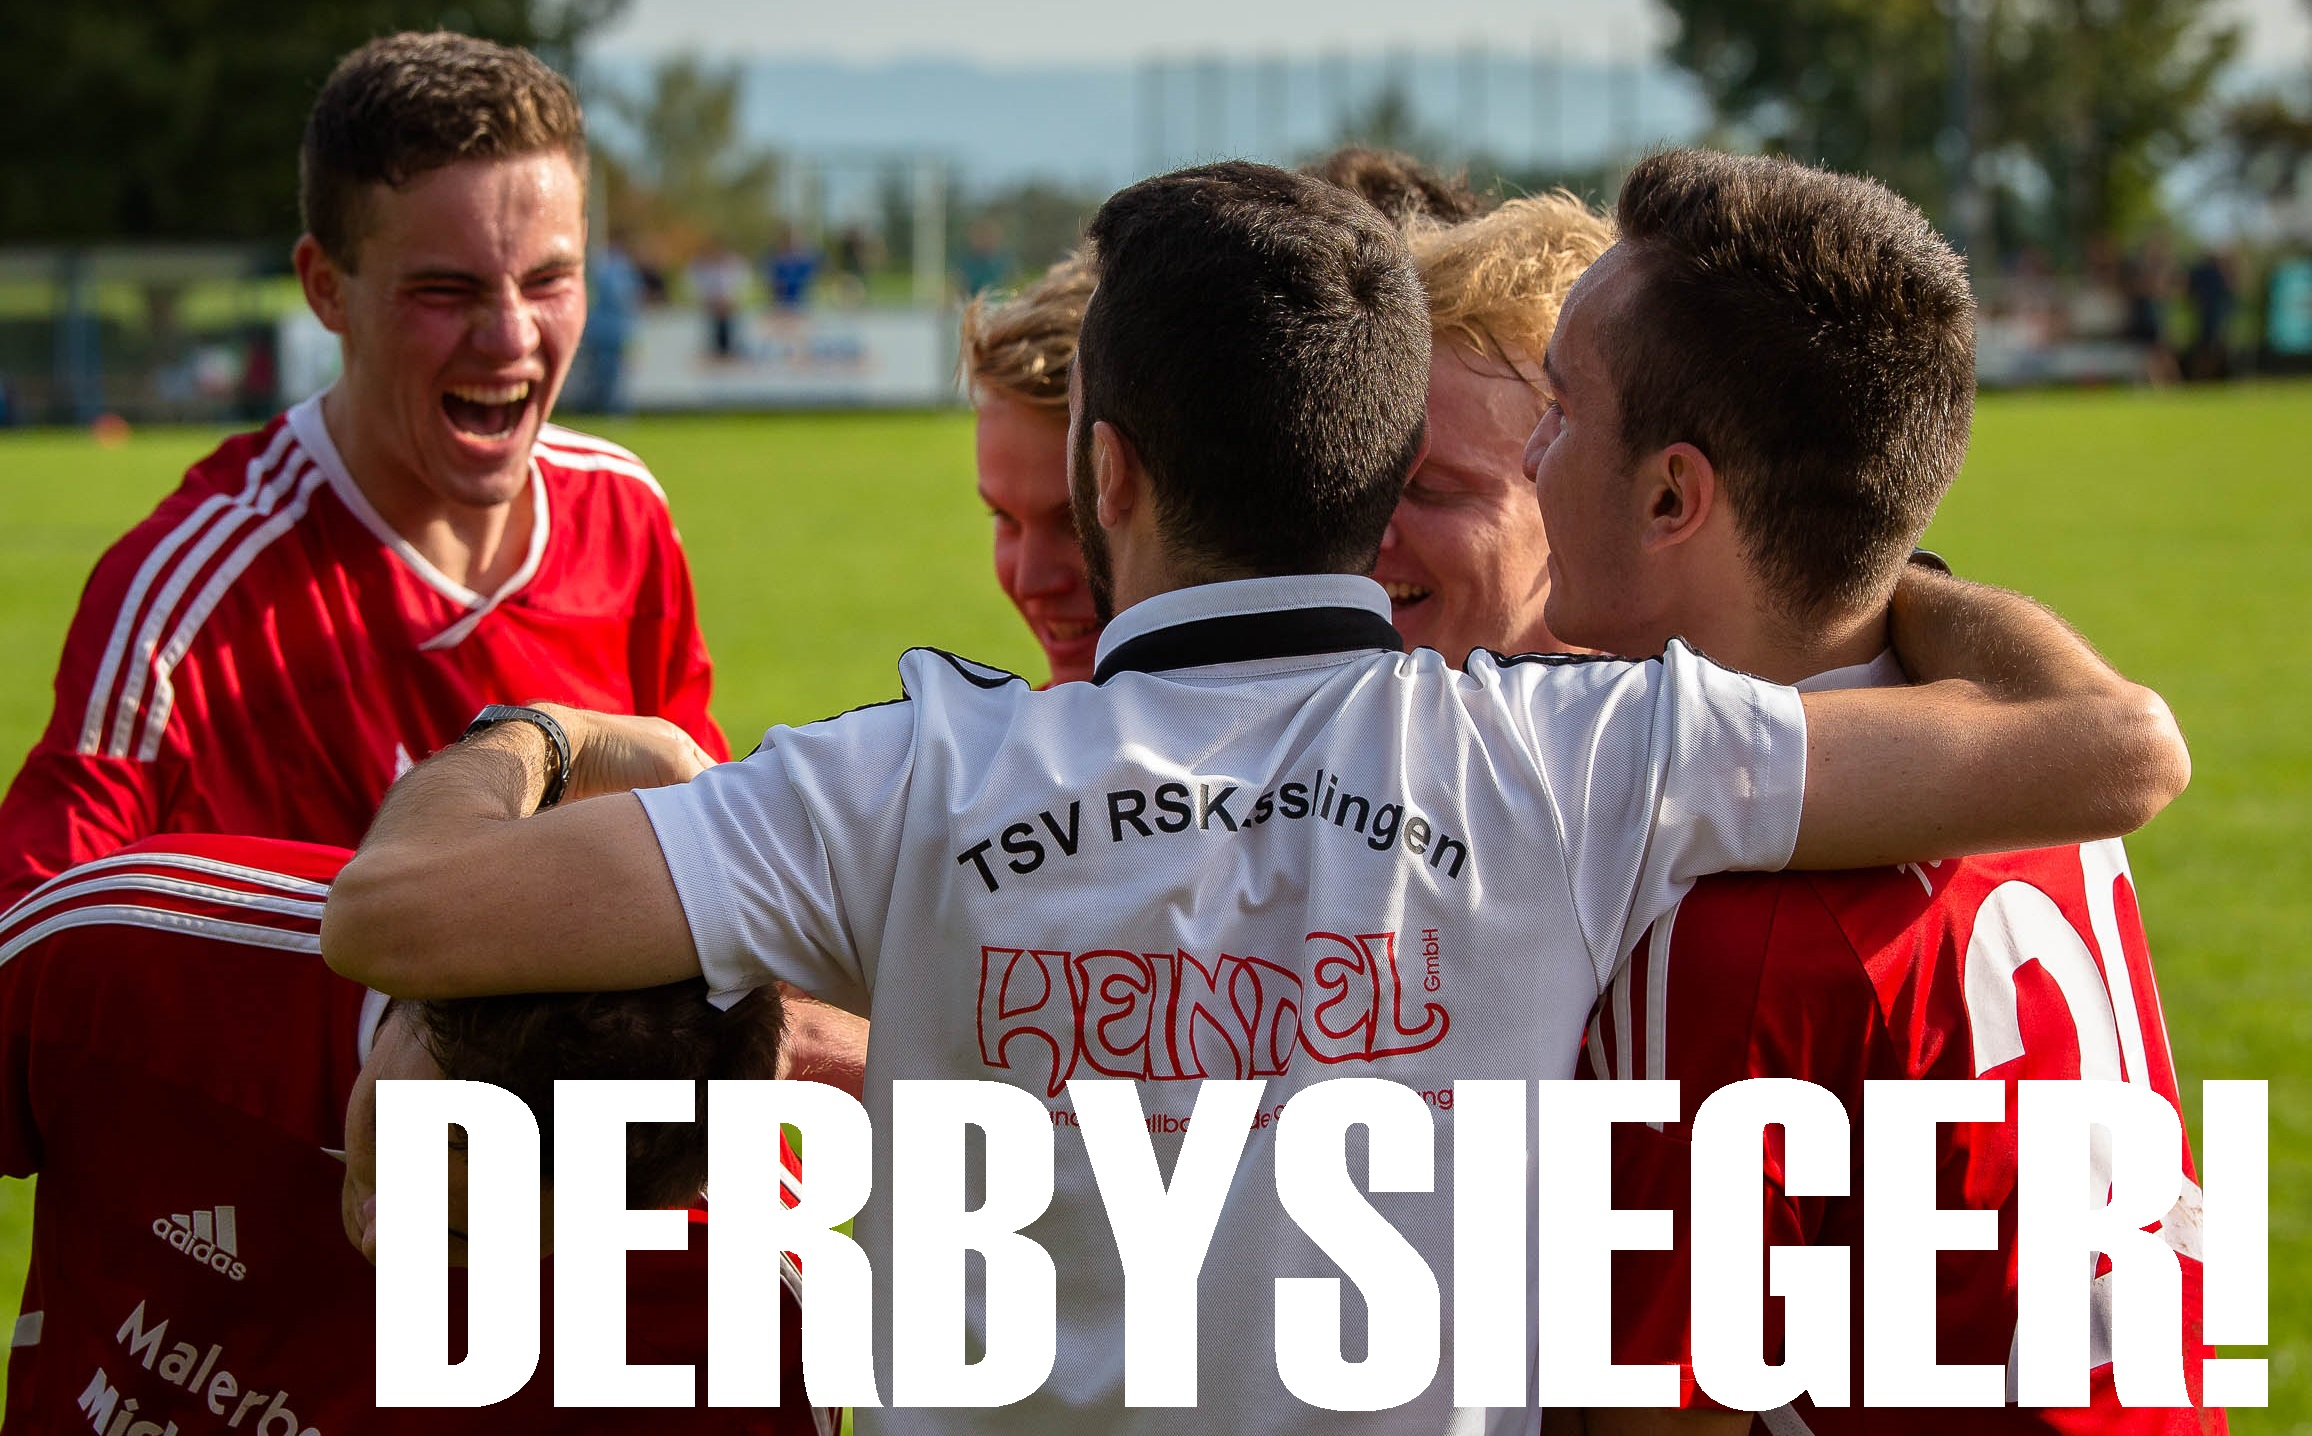 2014.09.28 Derbysieger 1 Jubel